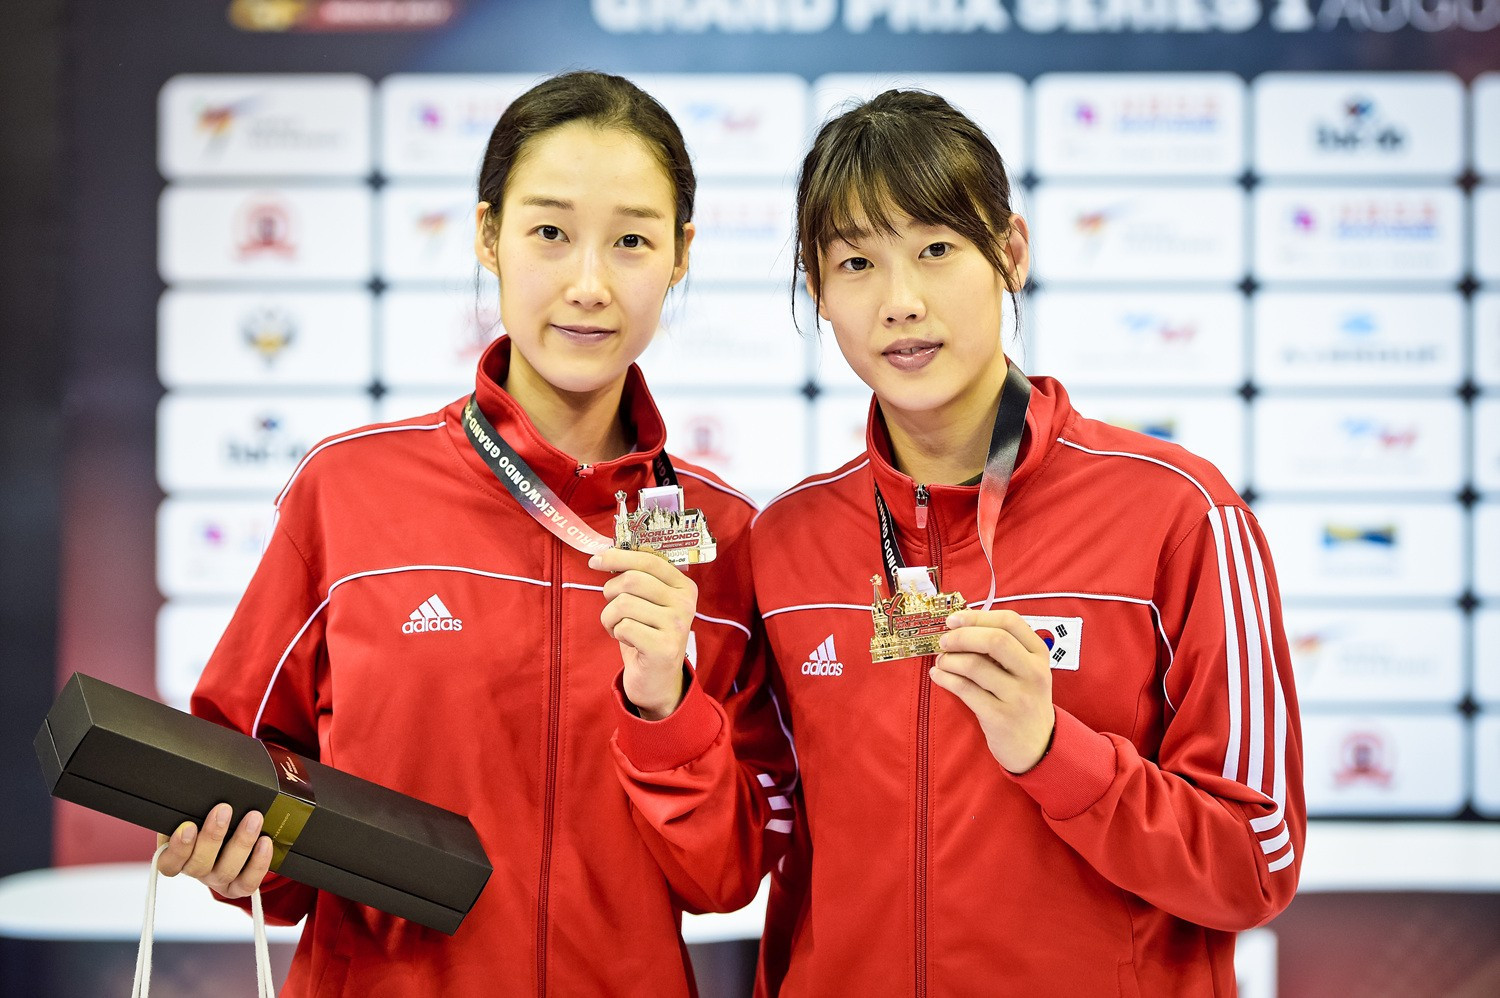 South Korea win two gold medals on final day of World Taekwondo Grand Prix in Moscow